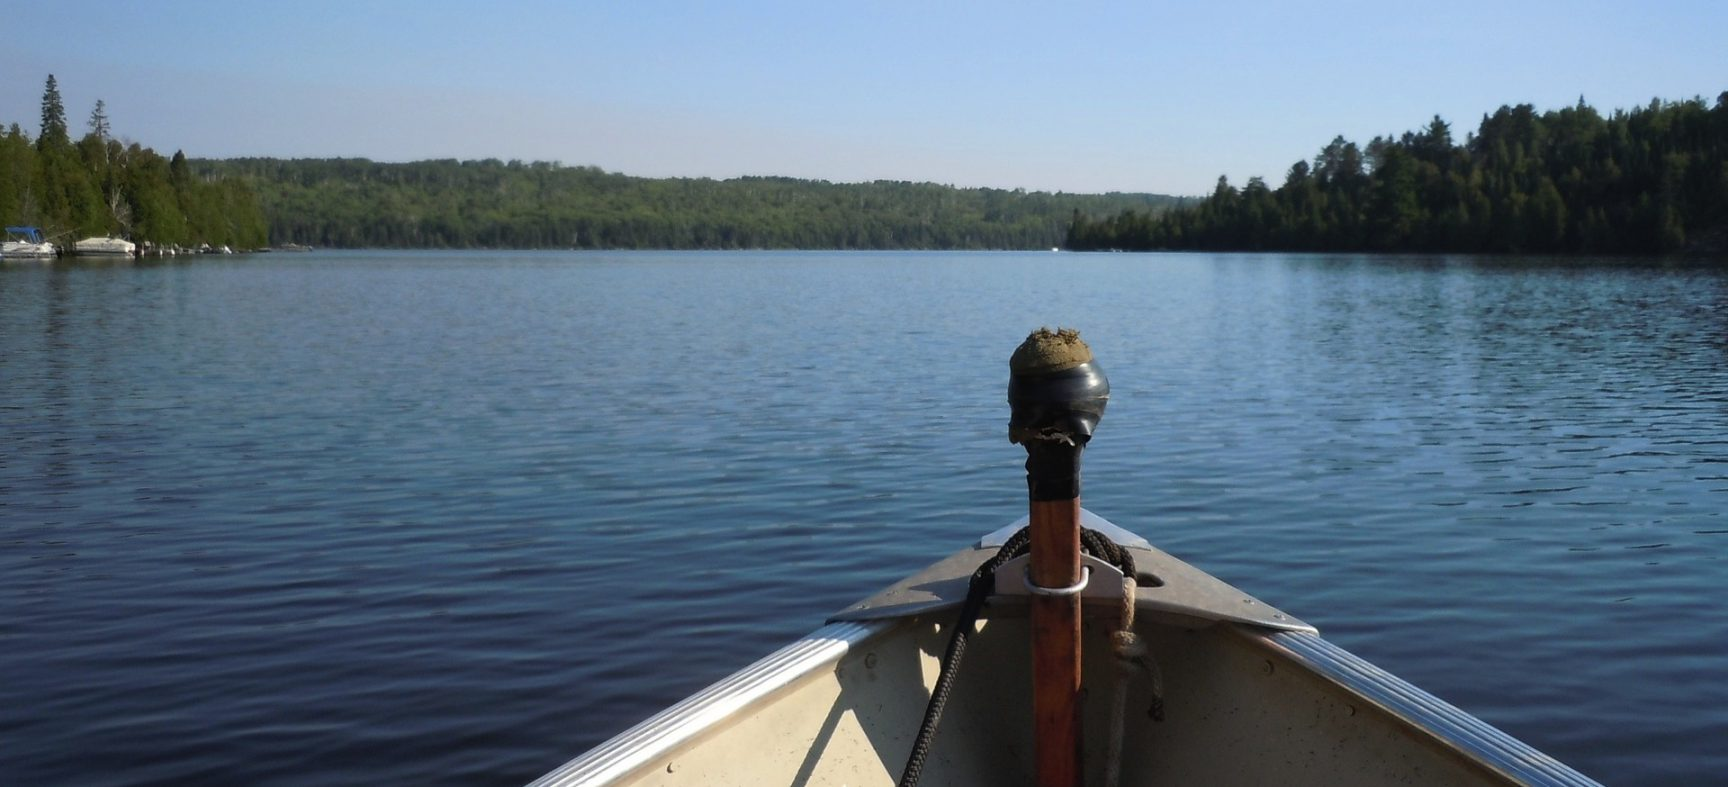 7 essential items for a day of boating